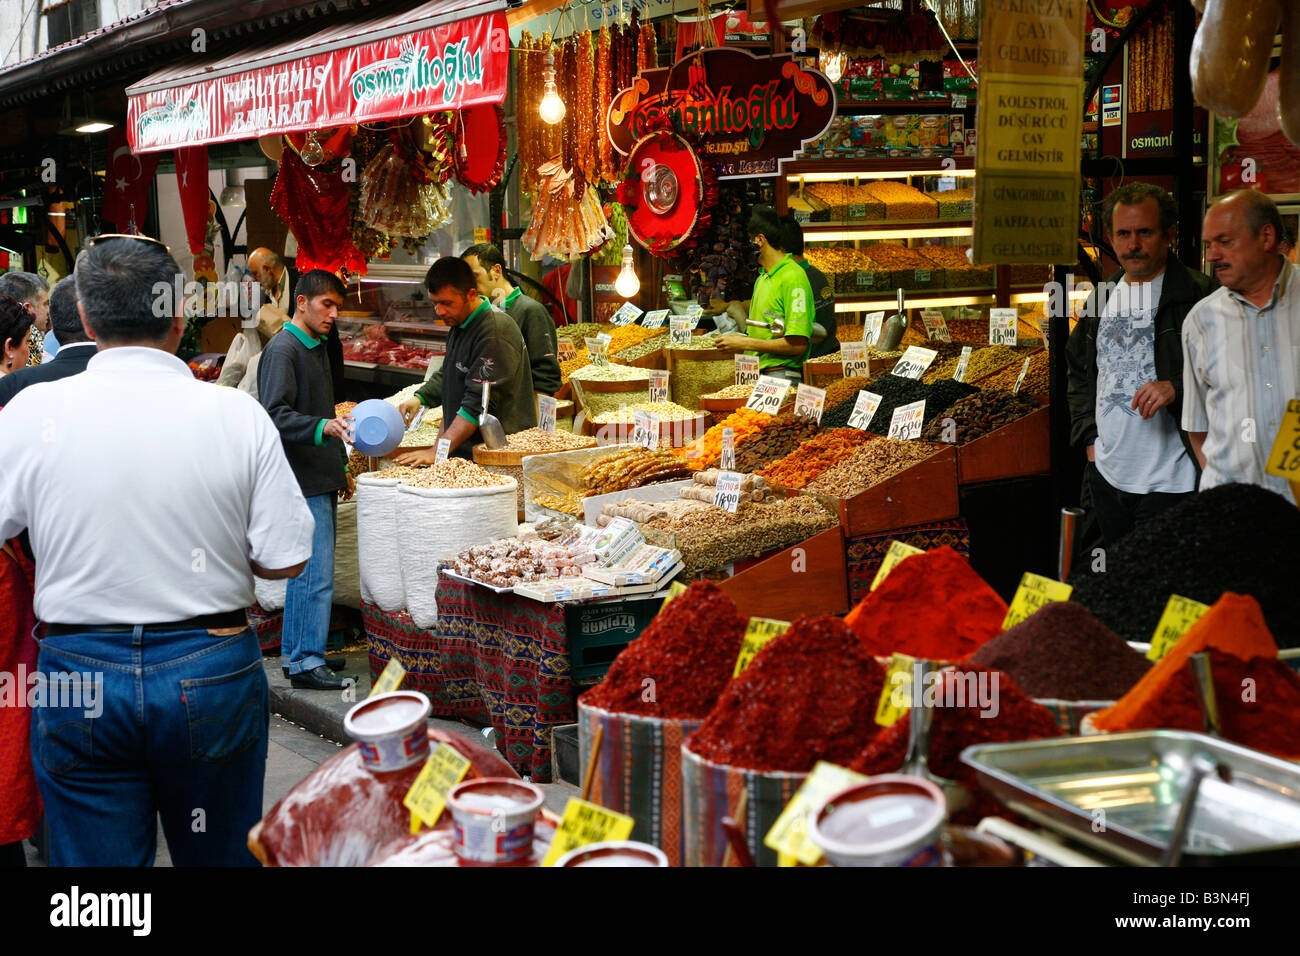 May 2008 - Spice shop at the Spice Bazaar Istanbul Turkey - Stock Image